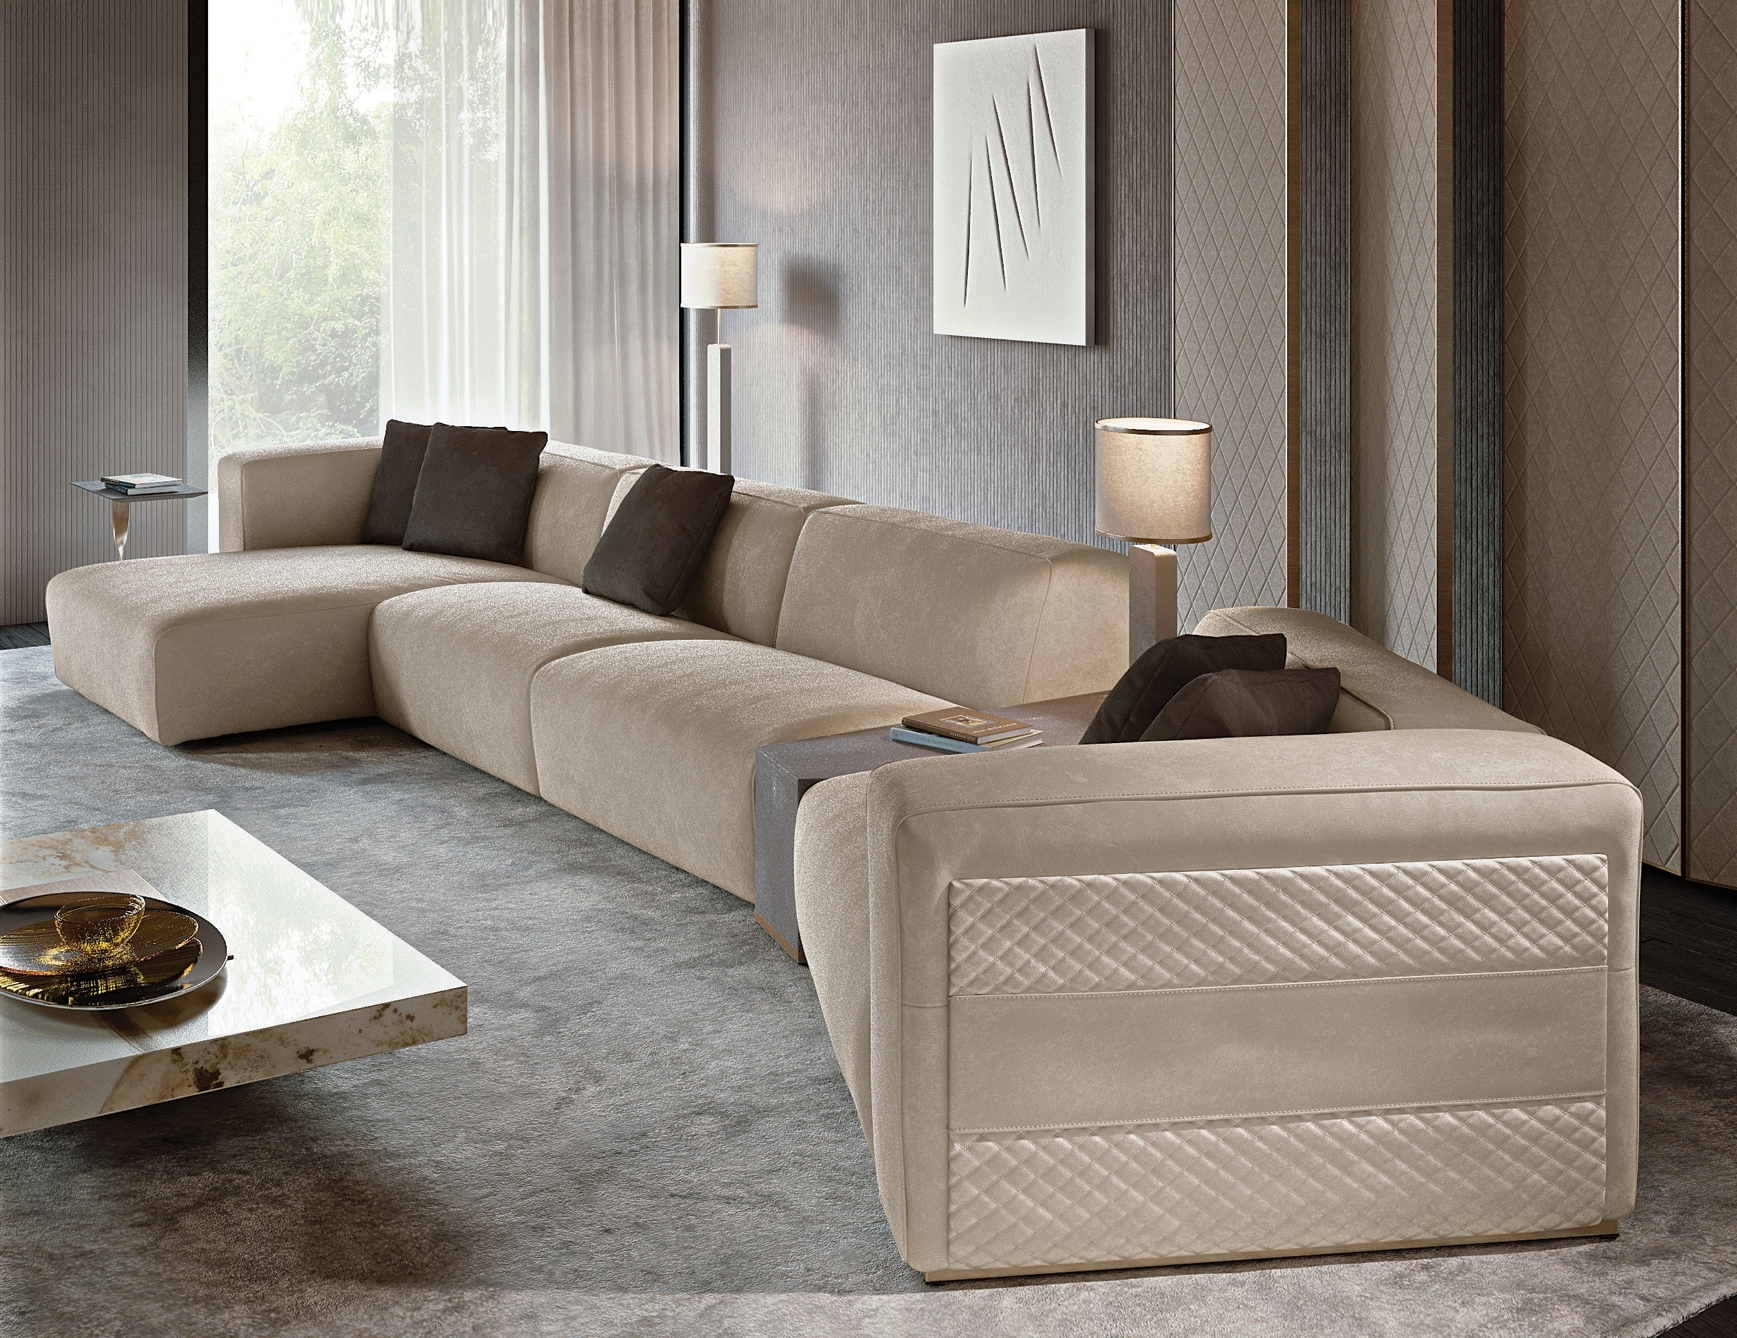 Nella Vetrina Rugiano Freud Sectional Sofa In Suede Inside 2017 High End Sofas (View 6 of 15)